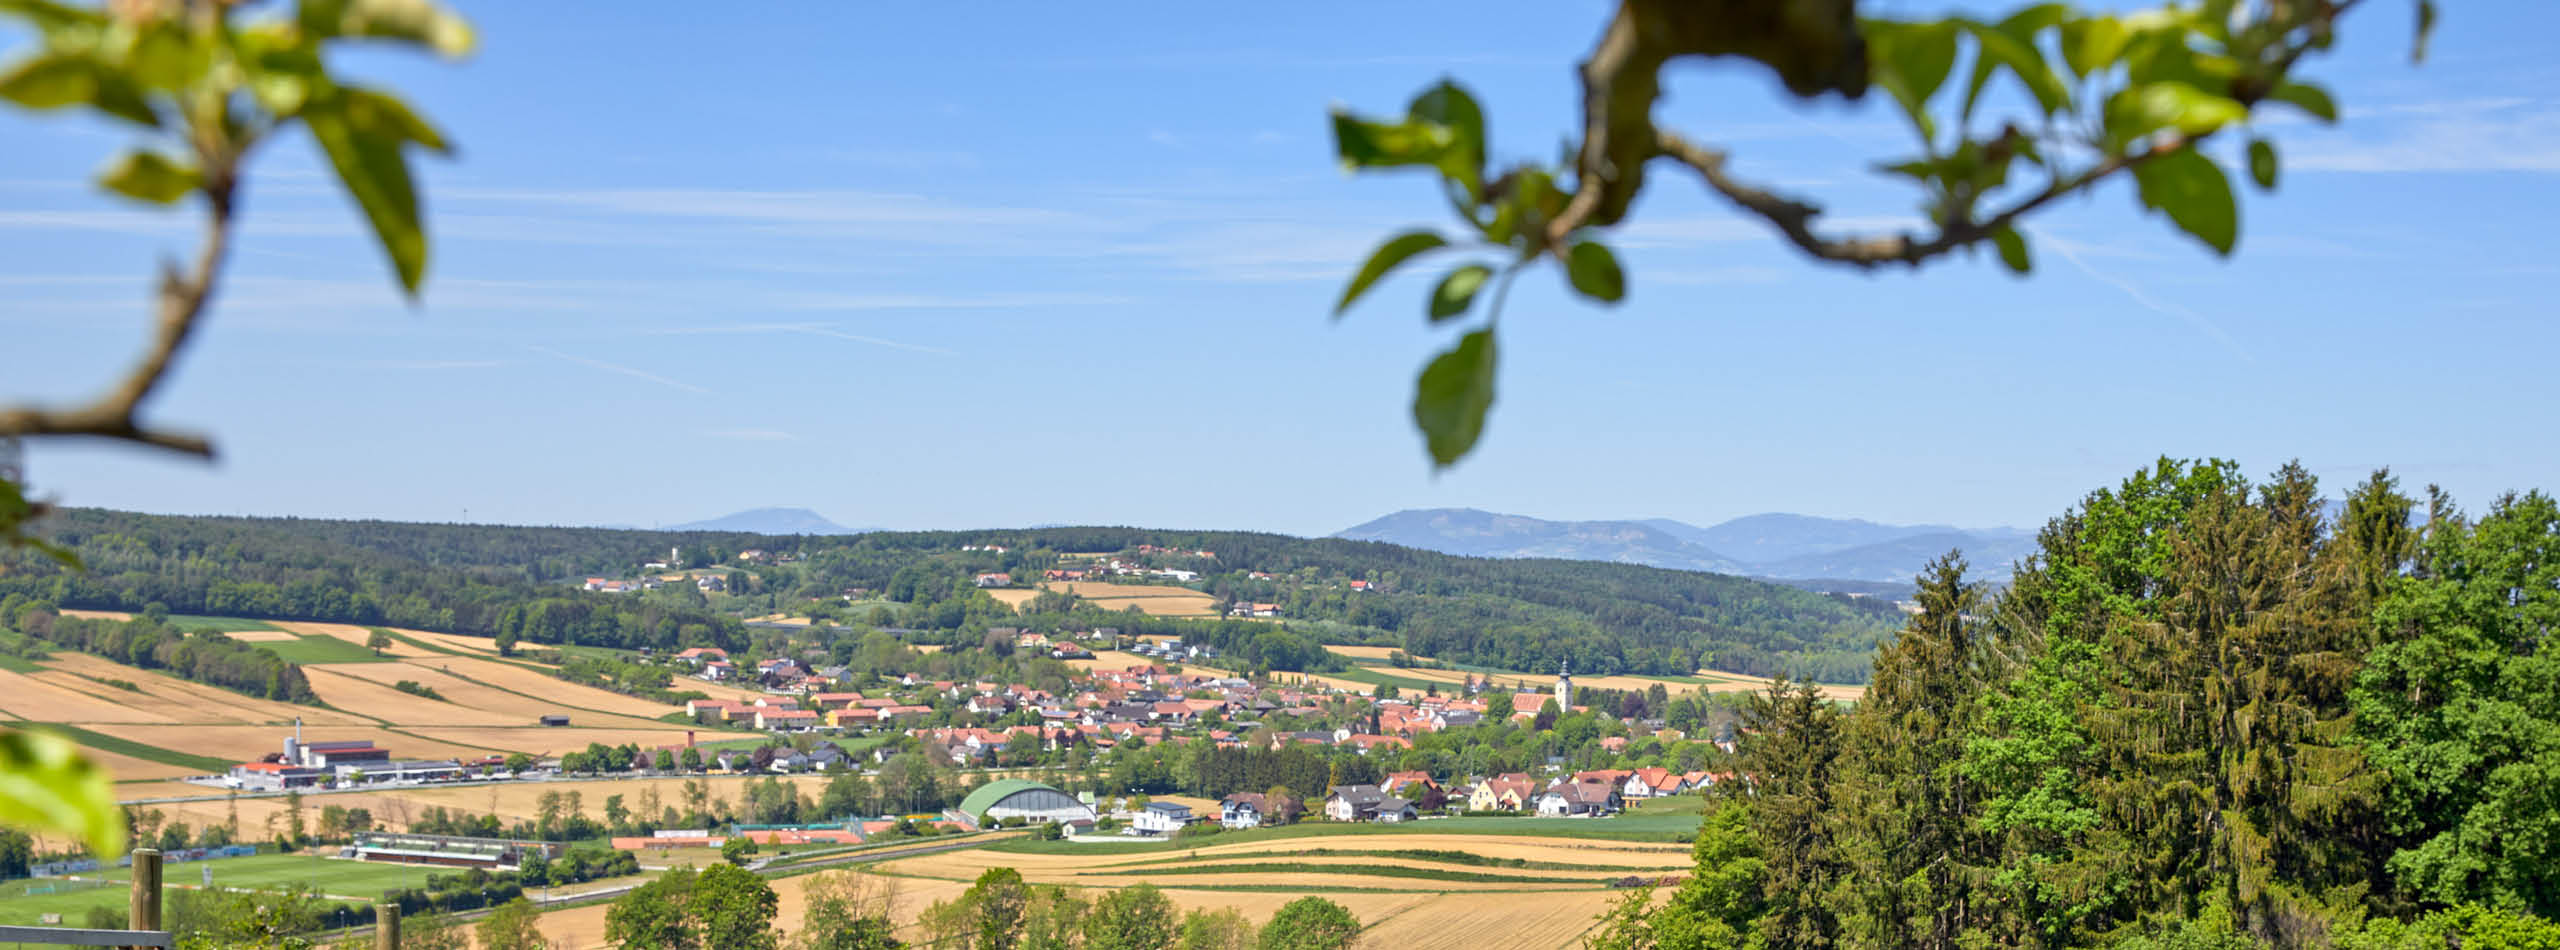 Experience variety on your Ayurvedic holiday in Styria's Bad Waltersdorf